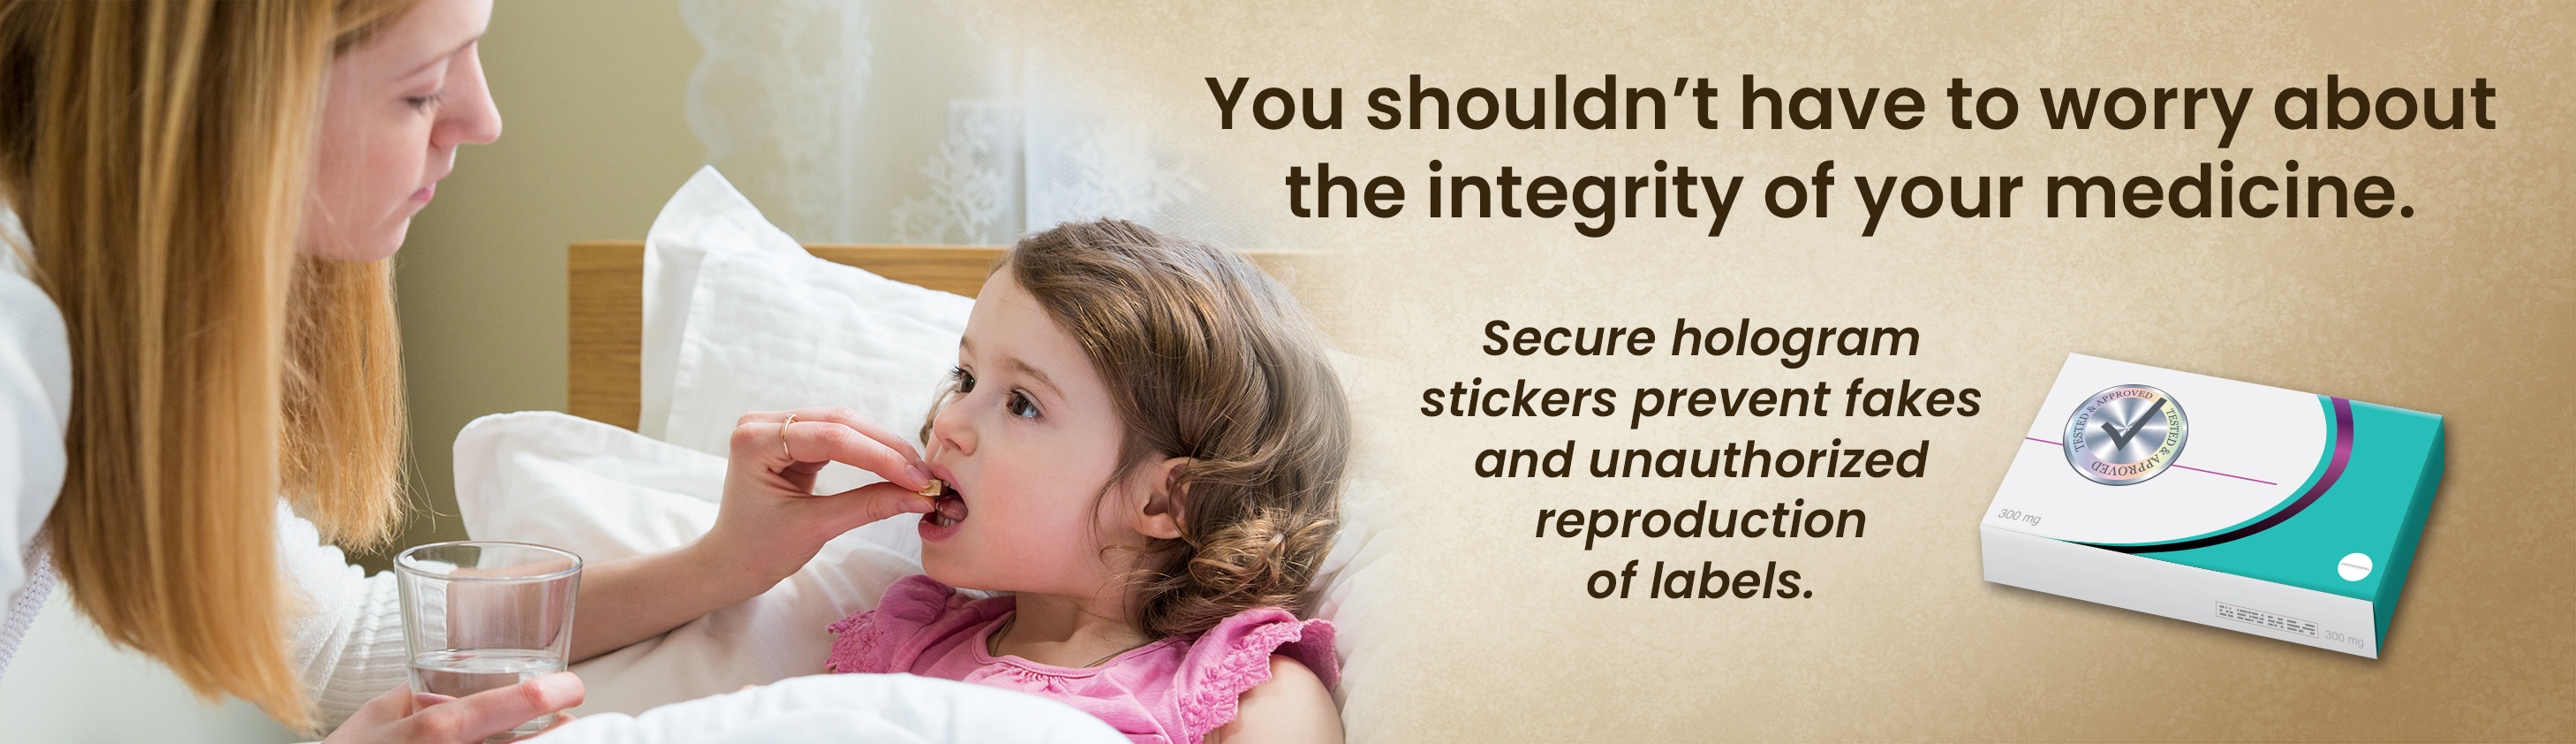 """Child in bed taking medication with text """"You shouldn't have to worry about the integrity of your medicine"""""""